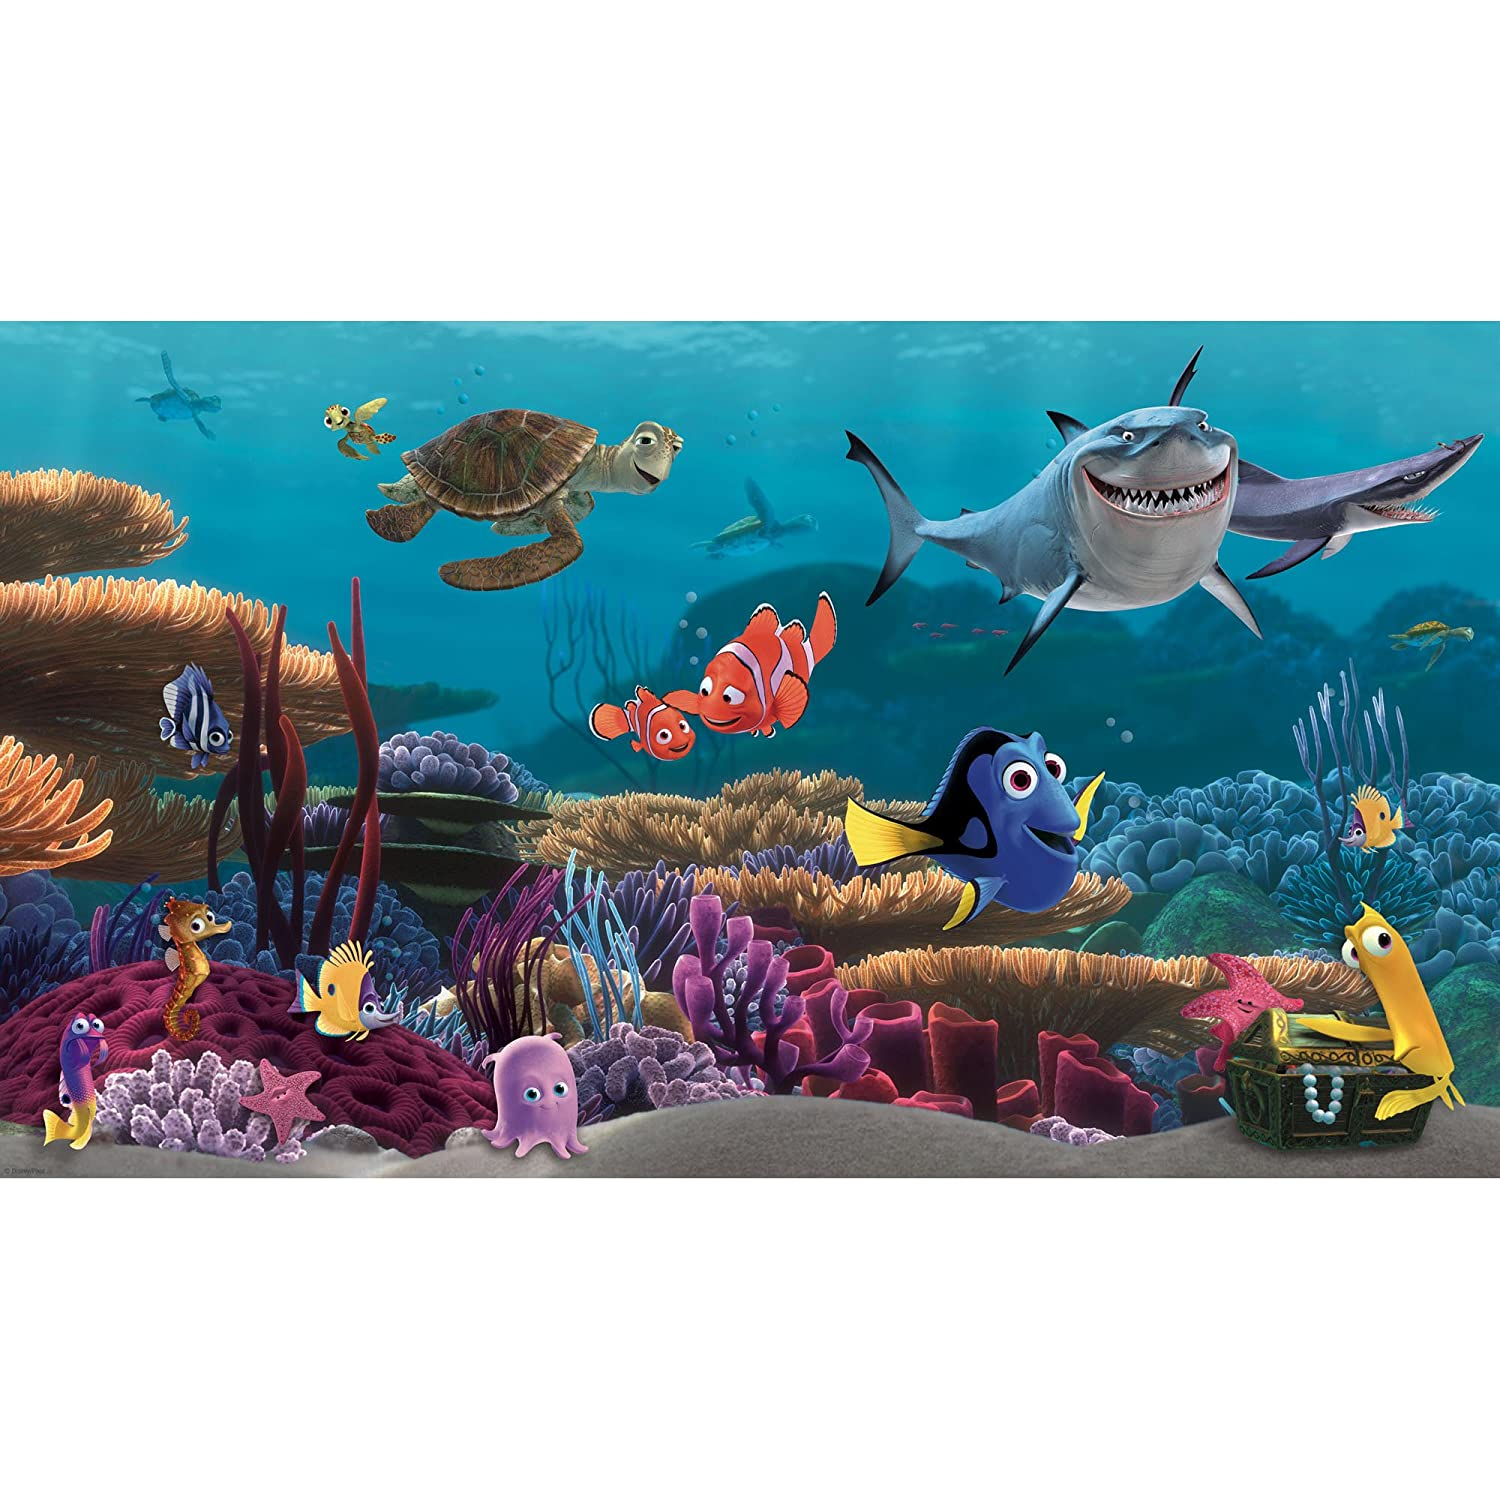 RoomMates JL1278M Finding Nemo Prepasted Mural 6 Feet By 10.5 Feet,  Ultra Strippable   Decorative Wall Appliques   Amazon.com Part 3